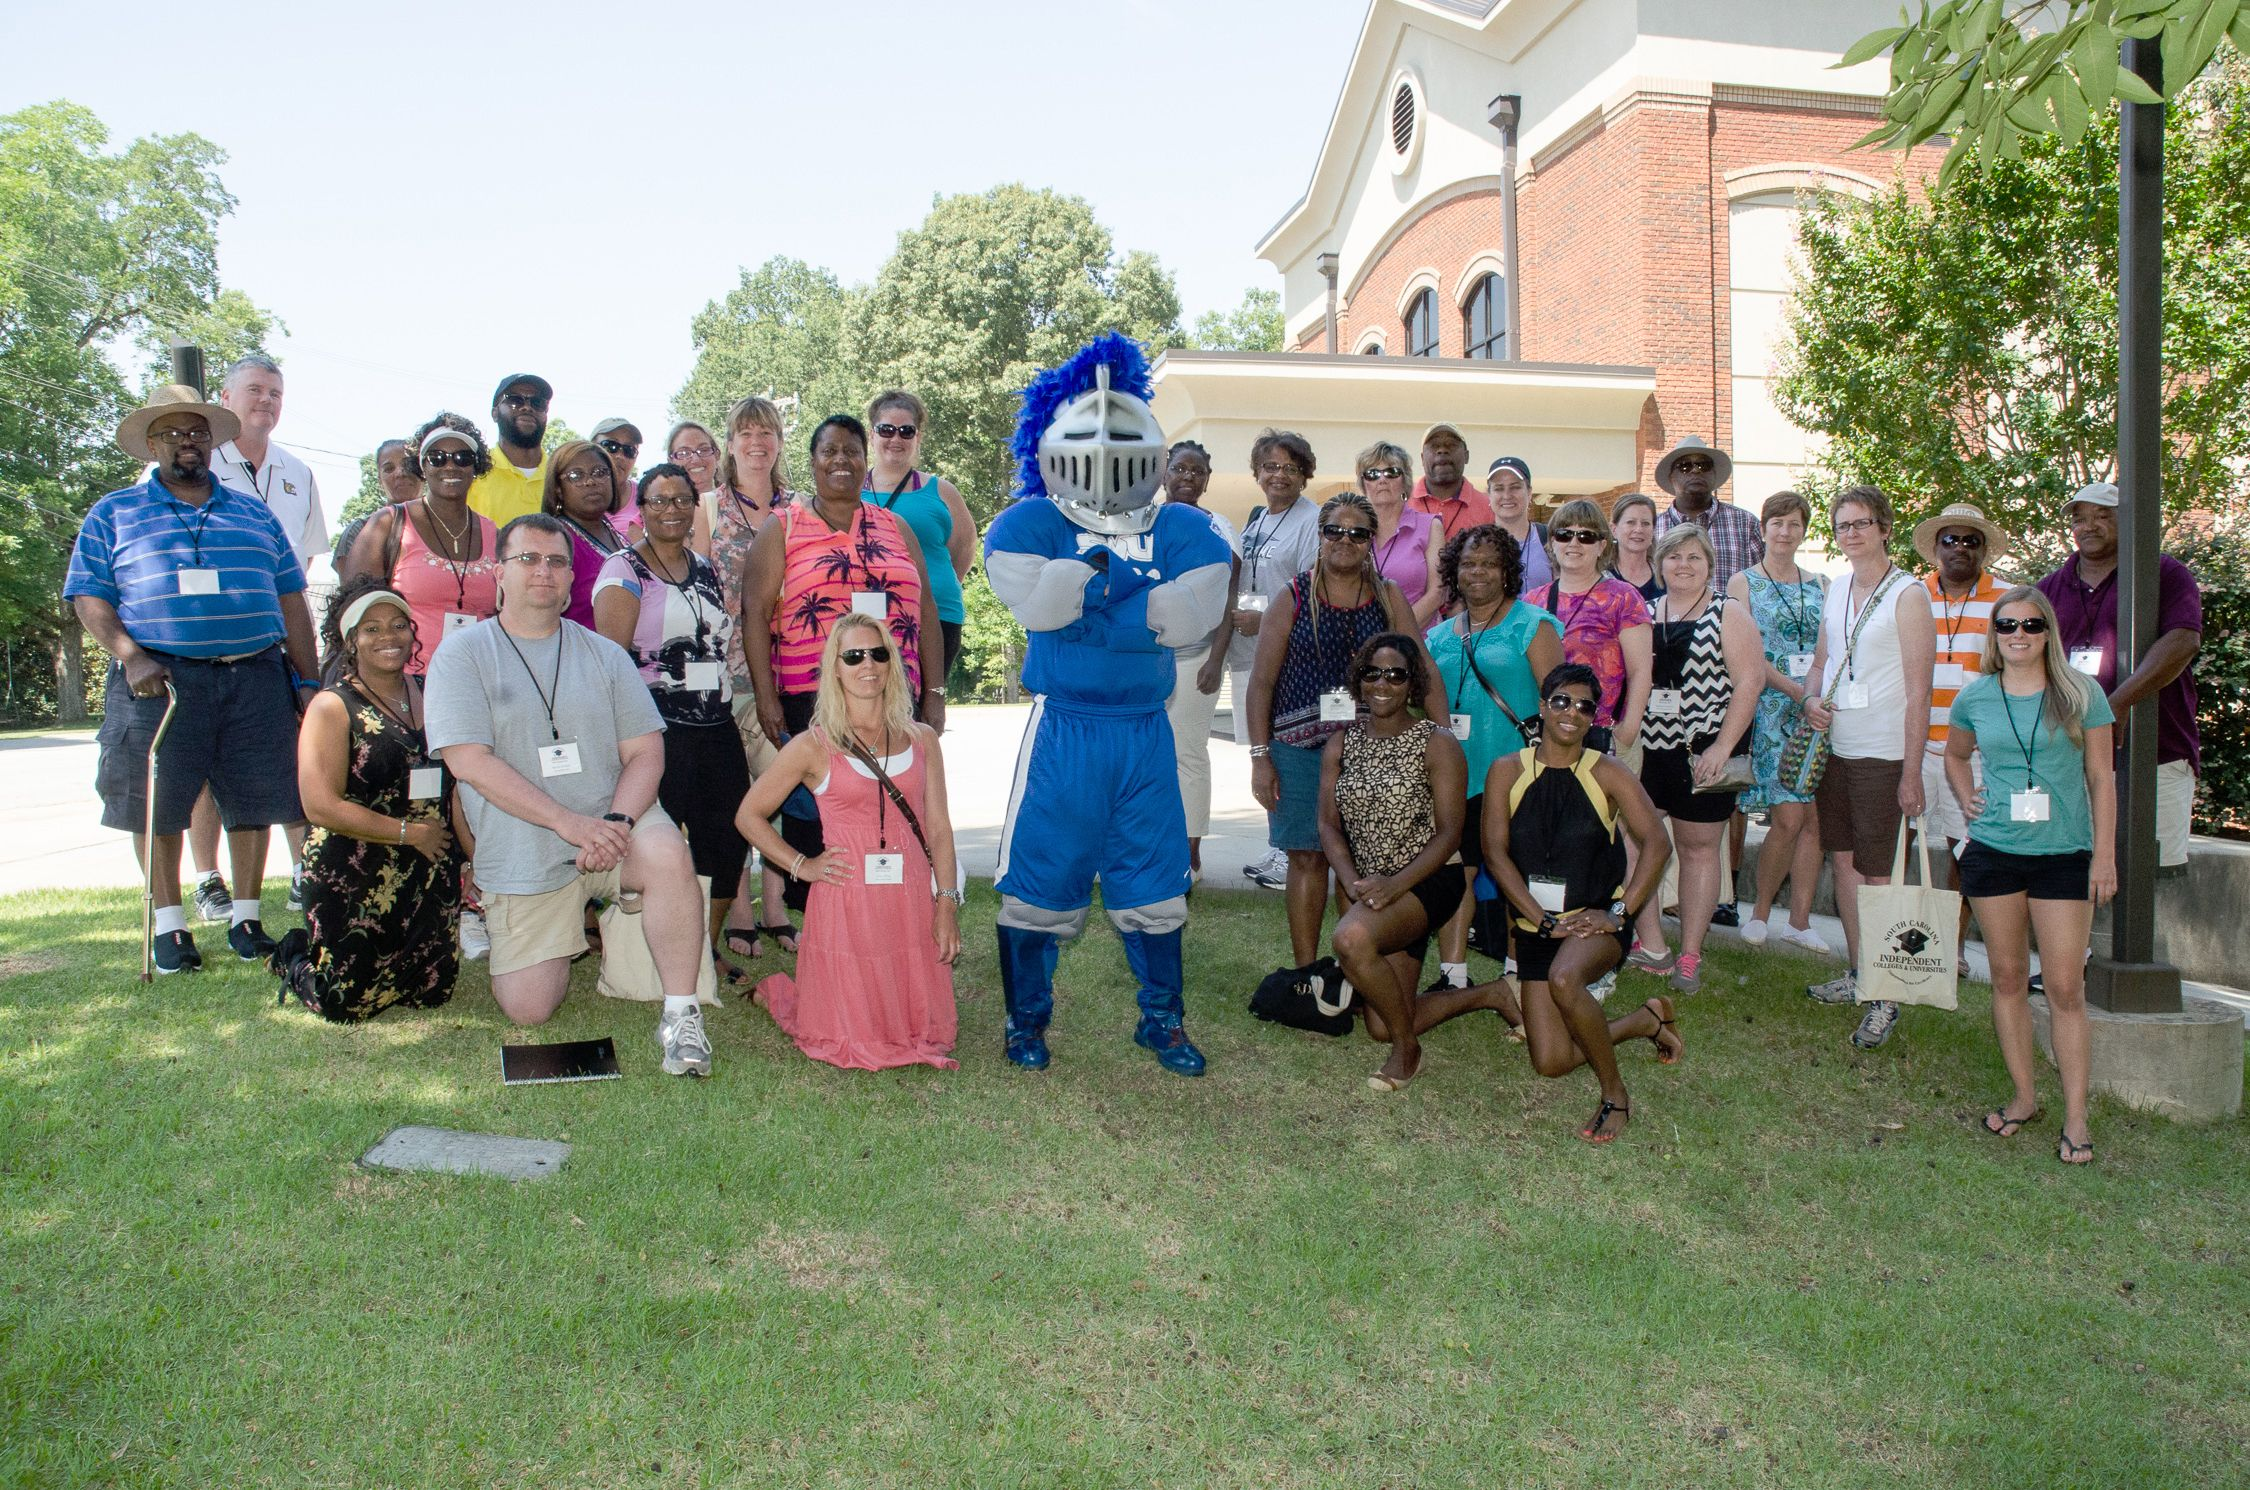 Guidance counselors from across the state pose with the Warrior Mascot as they arrive at SWU's Central campus. They were participants in the S.C. Guidance Counselor Bus Tour June 18. While at SWU, the counselors toured the campus and met with President Todd Voss, along with faculty, staff and students. The stop was topped off by a delicious lunch at the Dining Commons.